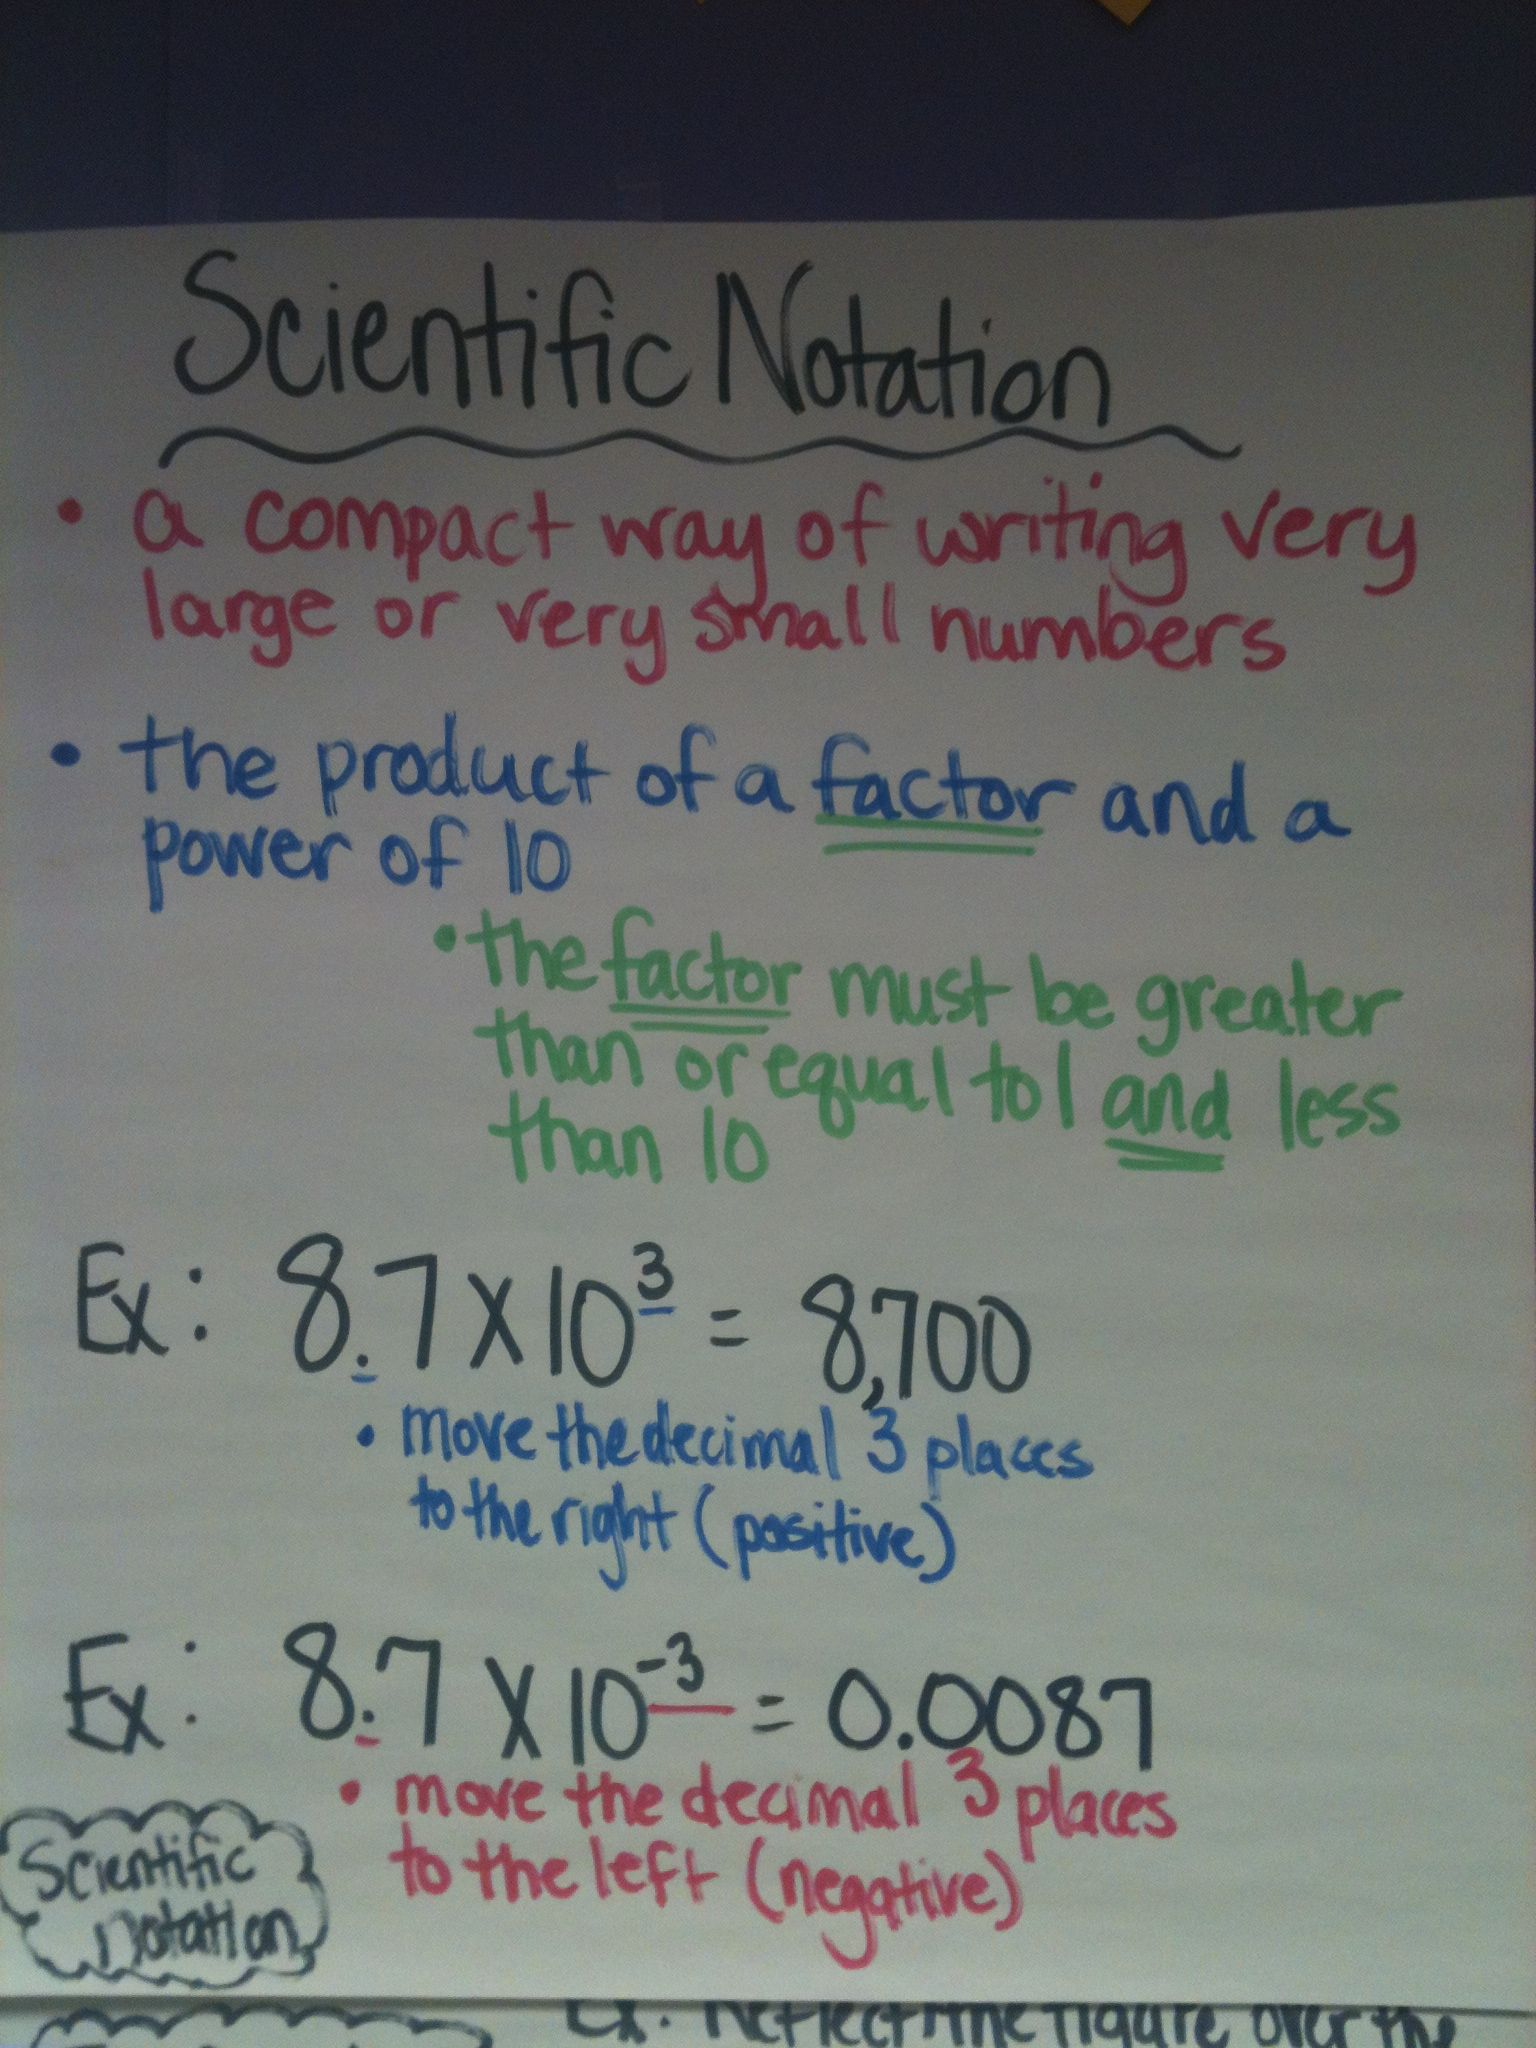 Here S An Anchor Chart On Scientific Notation With